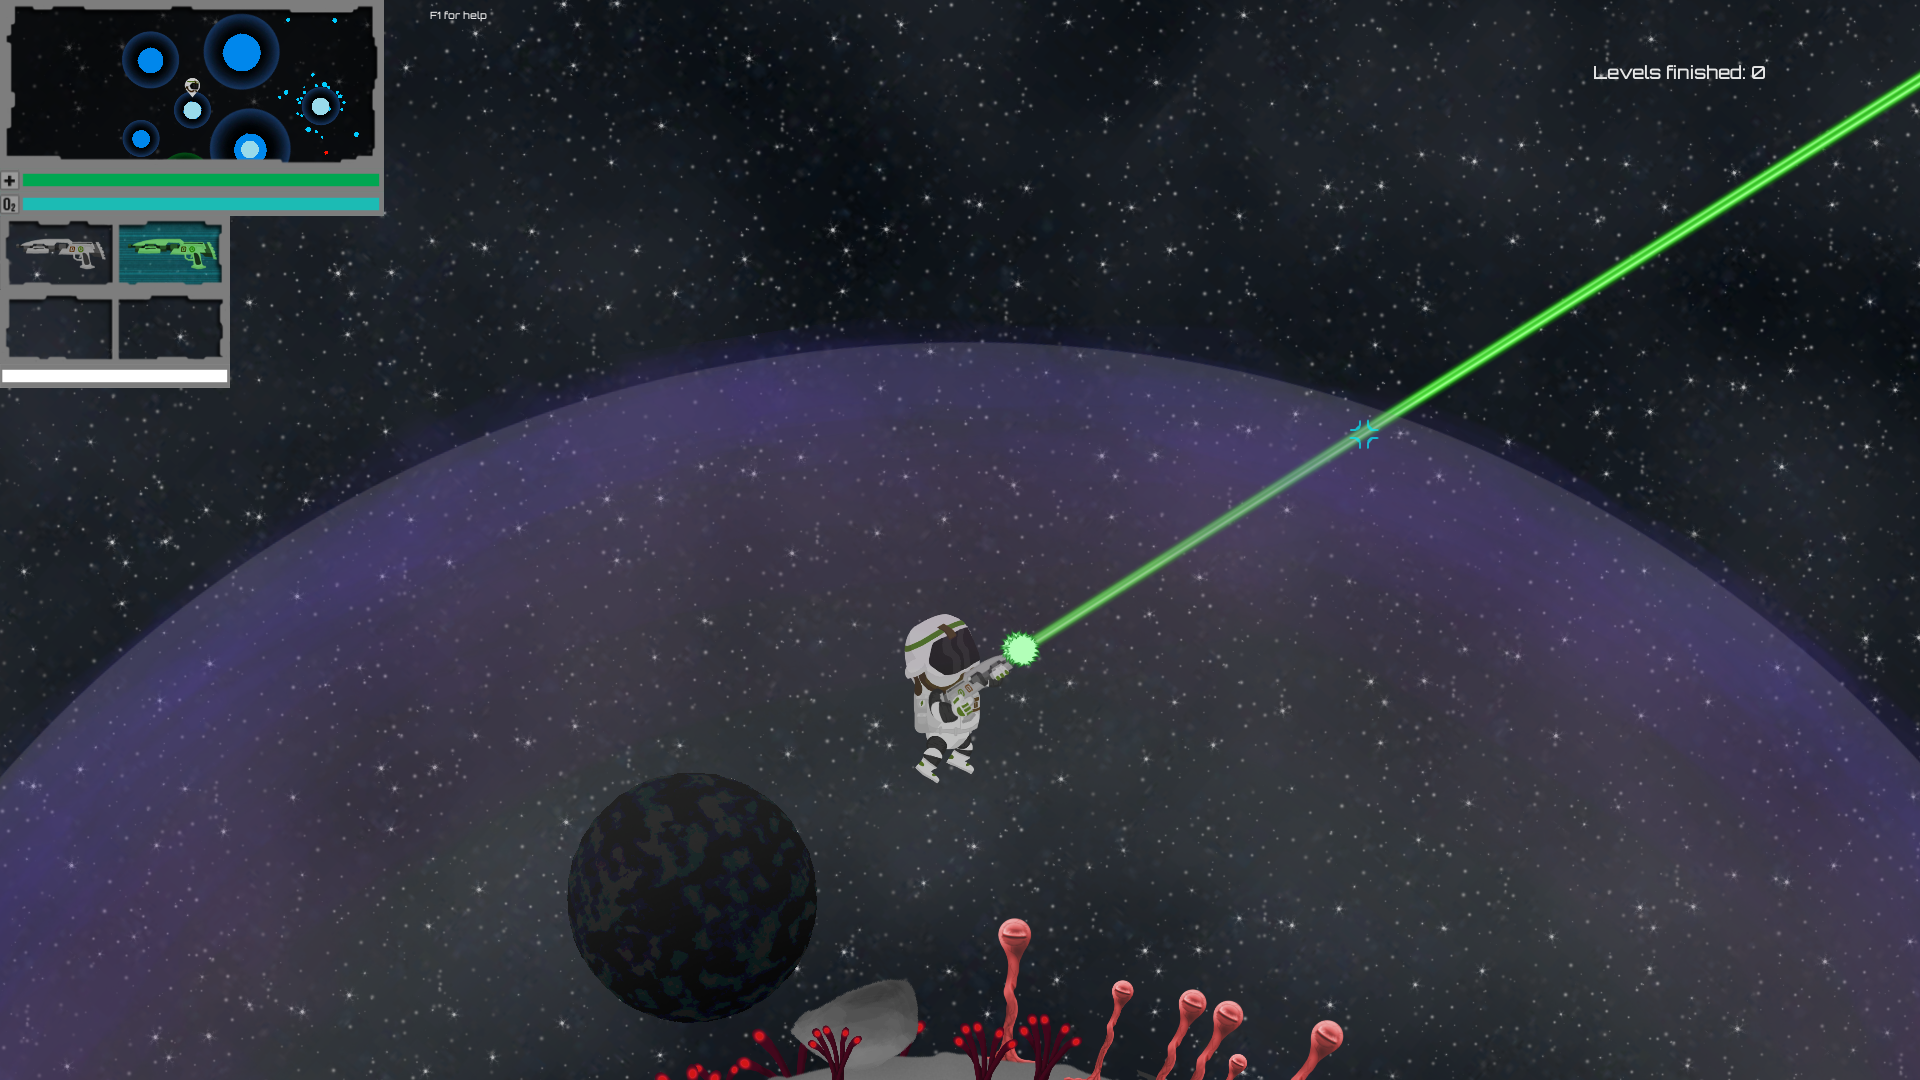 Orbit - Gameplay - Weapon: Laser gun, direct relationship between weapon pickup and factor of fun